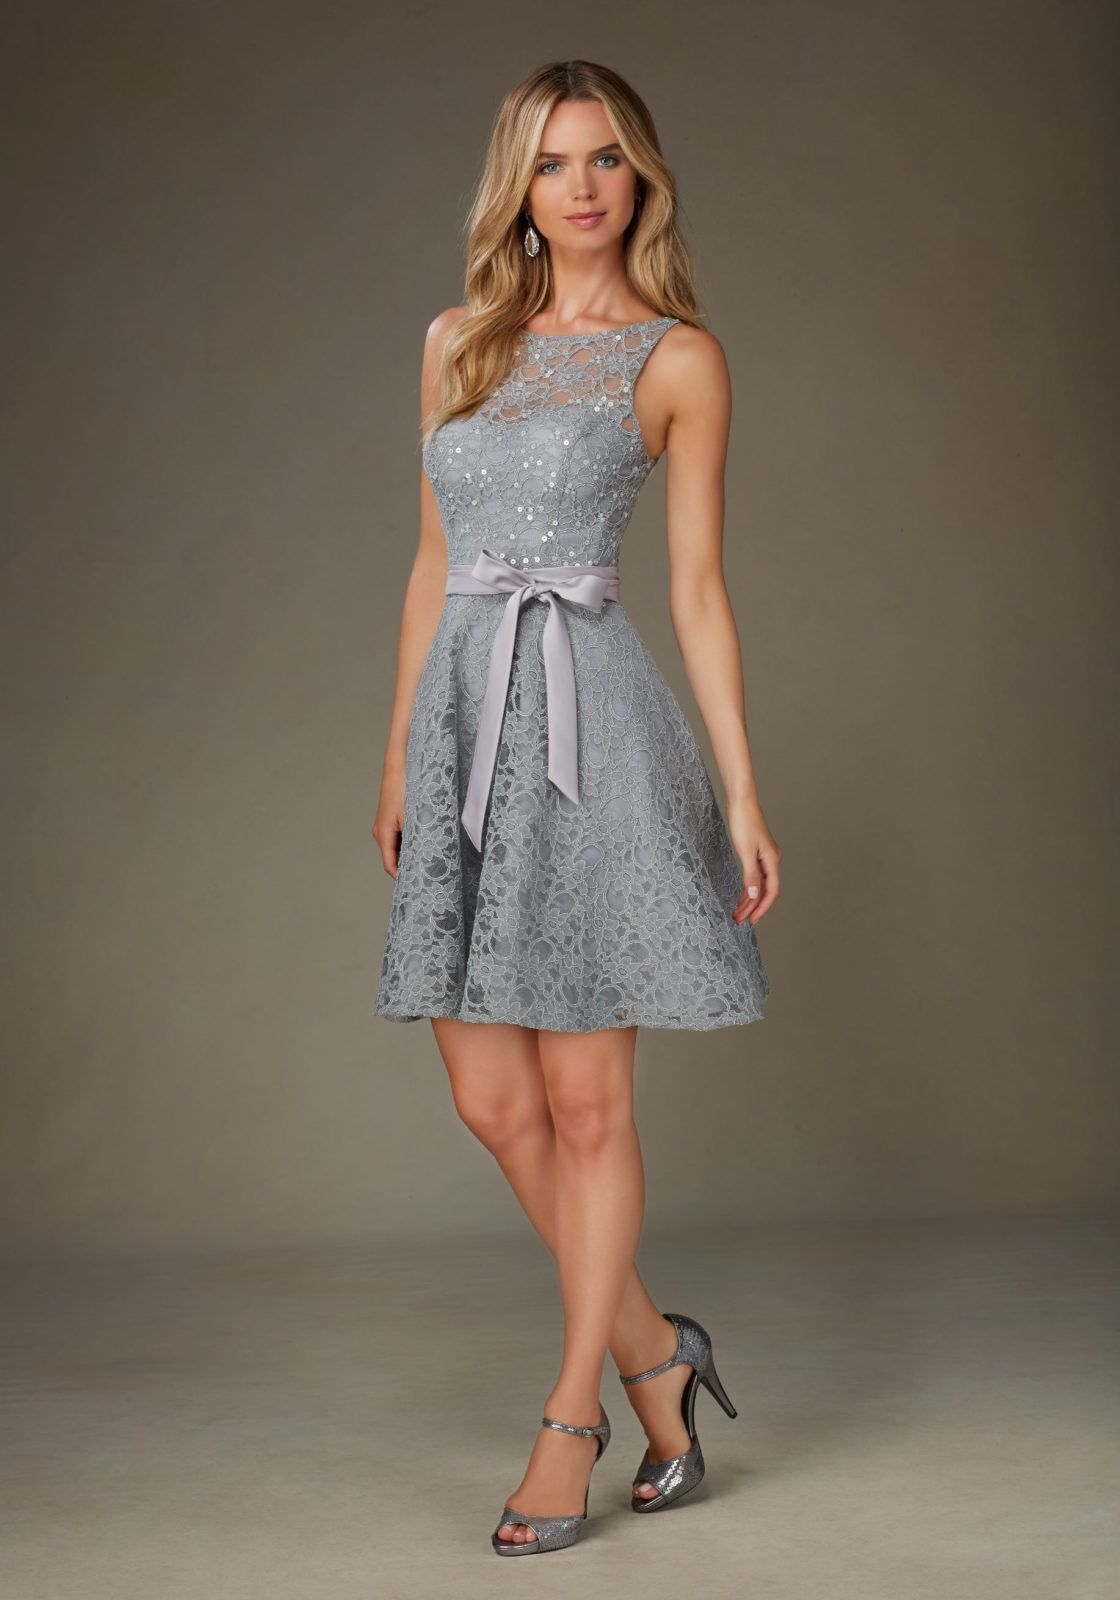 Delicately Beaded Lace Bridesmaid Dress With Bateau Neckline And Matching Tie Sash